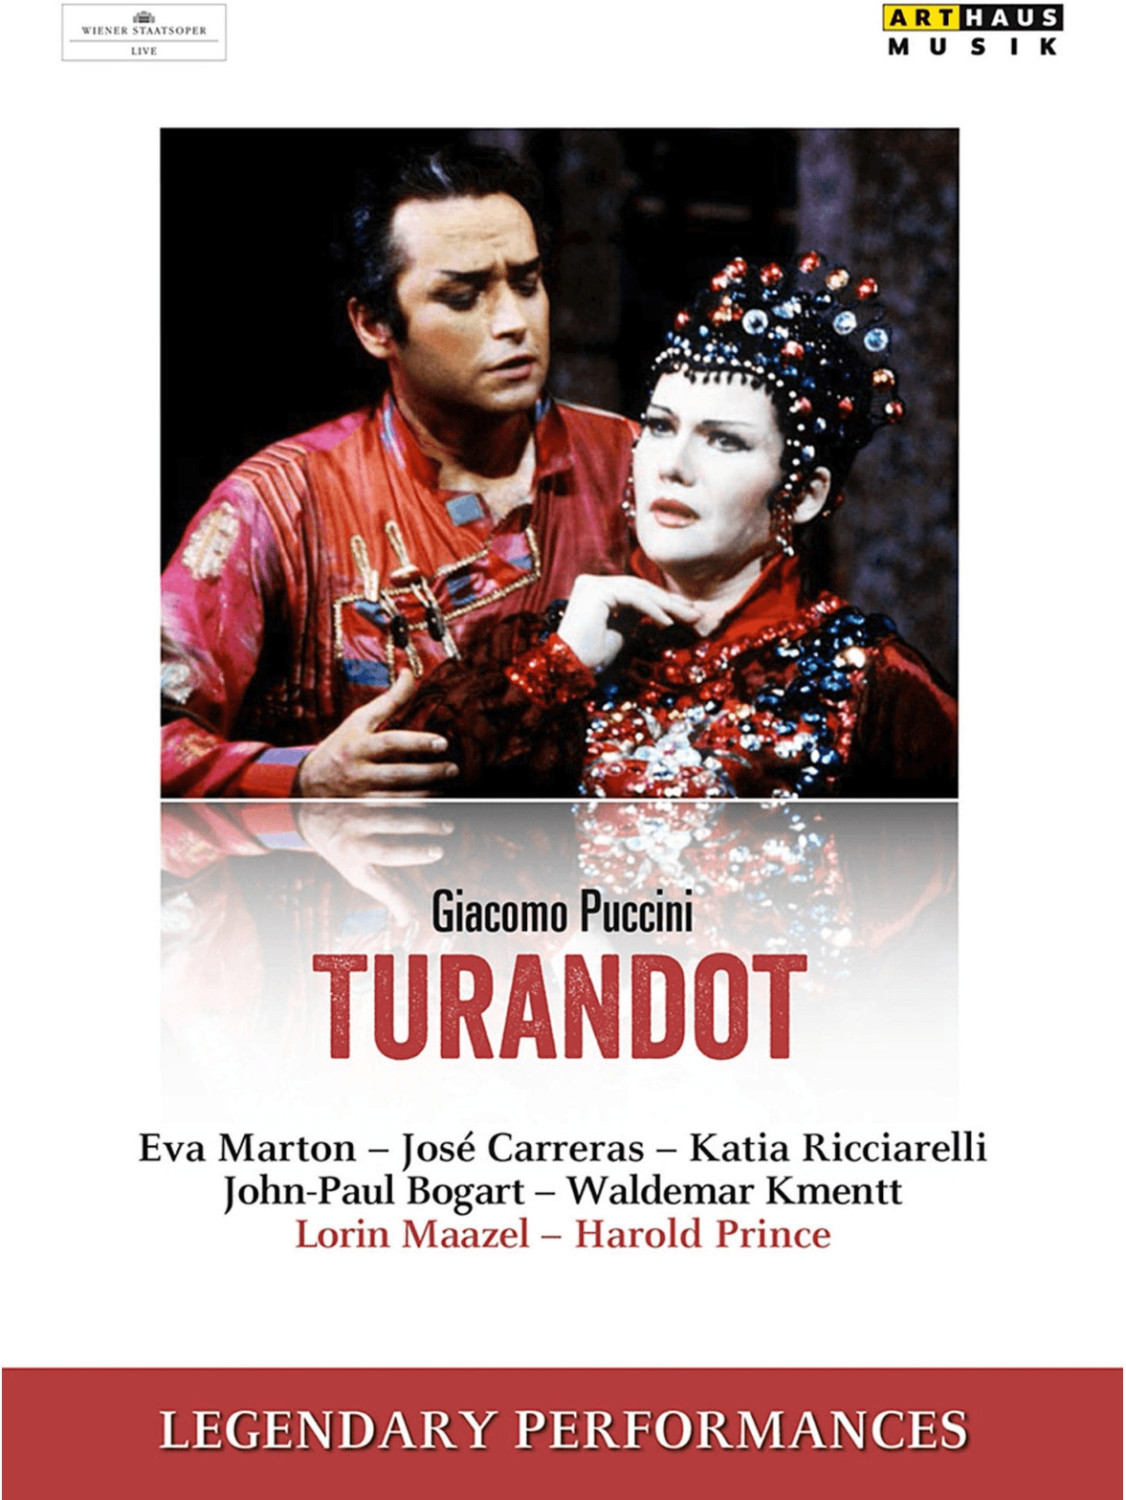 Turandot (Legendary Performances) [DVD]